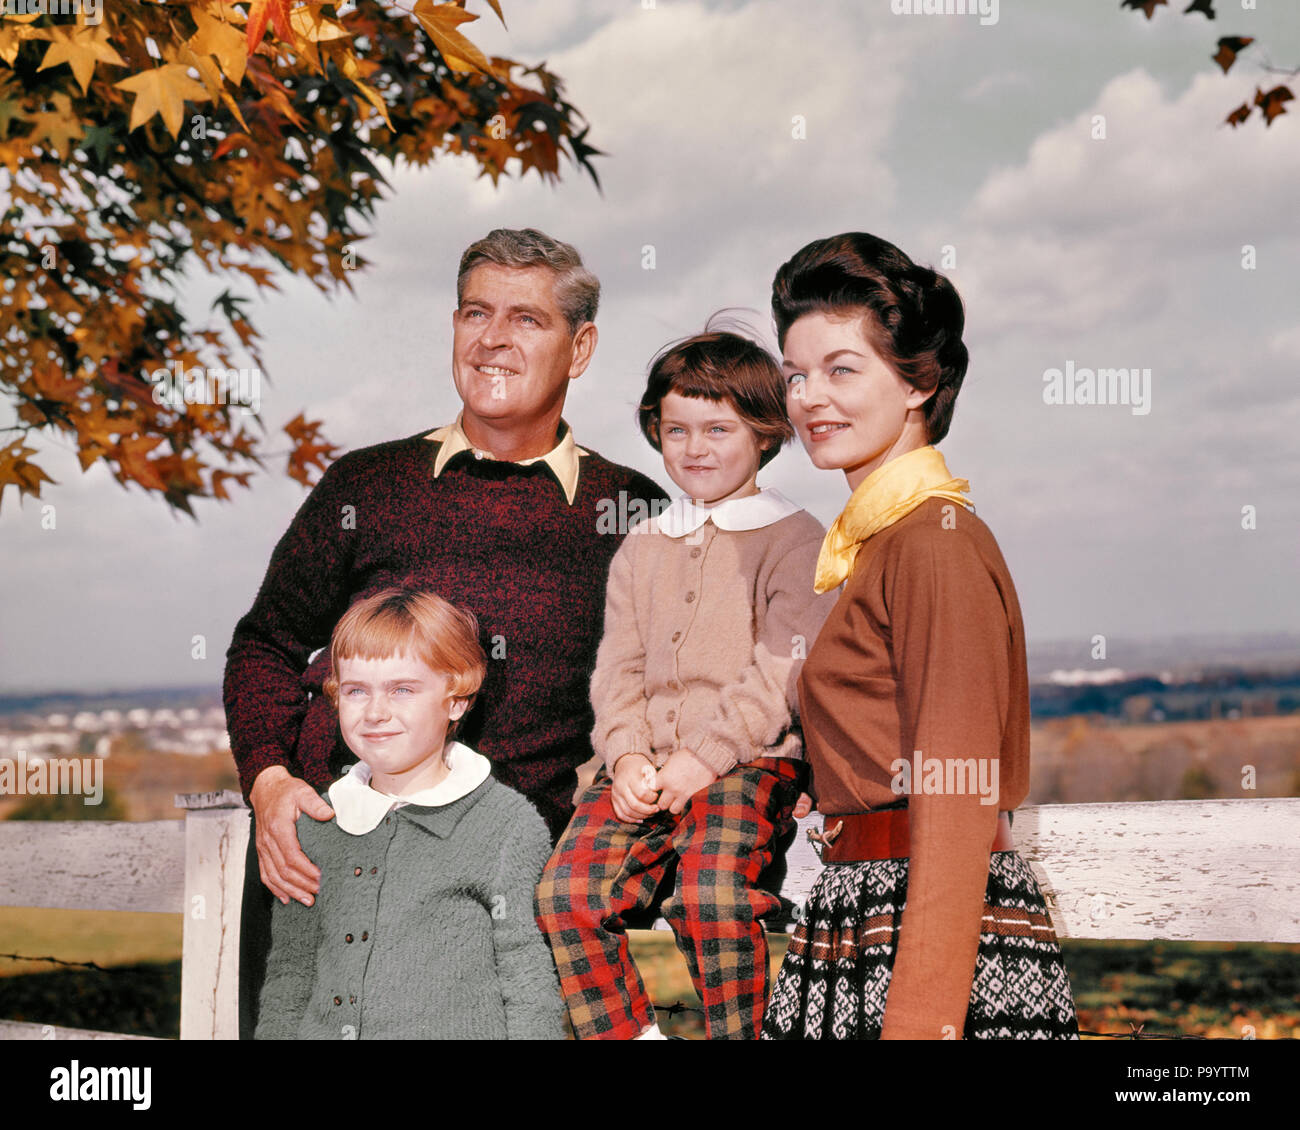 1960s FAMILY PORTRAIT OUTDOORS AUTUMN STANDING BY WHITE FENCE - kj1599 HAR001 HARS PAIR 4 LEAVES SUBURBAN COLOR RELATIONSHIP MOTHERS OLD TIME NOSTALGIA OLD FASHION SISTER 1 JUVENILE STYLE YOUNG ADULT PLEASED FAMILIES JOY LIFESTYLE FEMALES RURAL HEALTHINESS HOME LIFE NATURE COPY SPACE HALF-LENGTH LADIES DAUGHTERS PERSONS MALES SIBLINGS SISTERS FATHERS MIDDLE-AGED MIDDLE-AGED MAN HAPPINESS CHEERFUL DADS FALL SEASON PRIDE SIBLING SMILES CONNECTION JOYFUL RELATED STYLISH COOPERATION GROWTH JUVENILES MID-ADULT MID-ADULT WOMAN MOMS TOGETHERNESS AUTUMNAL CAUCASIAN ETHNICITY FALL FOLIAGE HAR001 - Stock Image